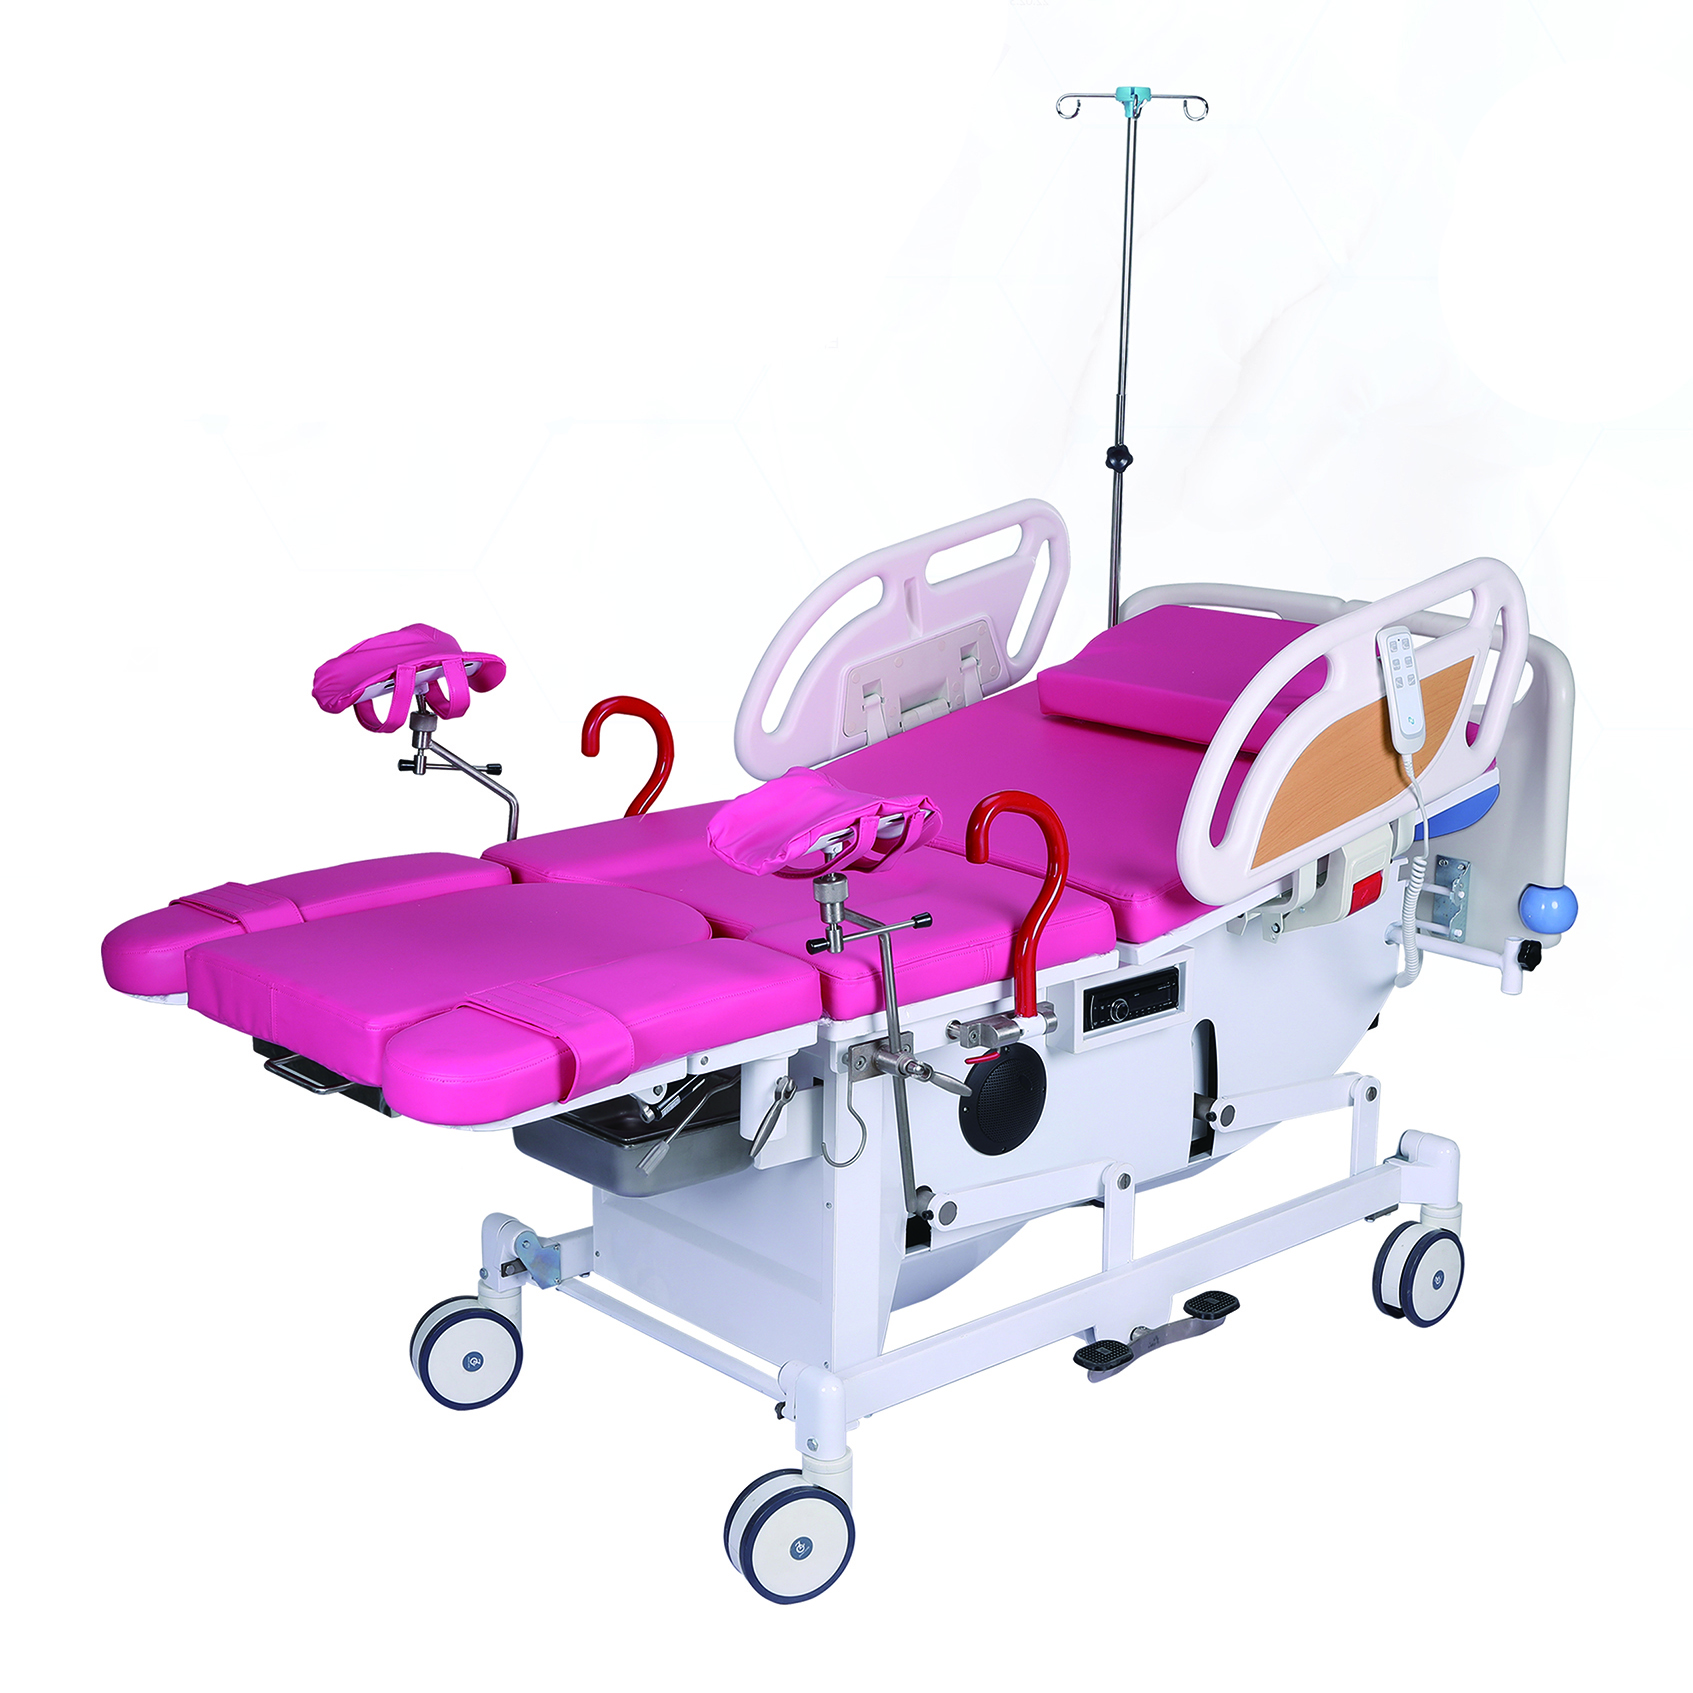 Modern Electric Delivery Bed Gynecology Hospital Bed For Pregnant Women  Giving Birth - Buy Electric Delivery Bed,Gynecology Hospital Bed,Gynecology